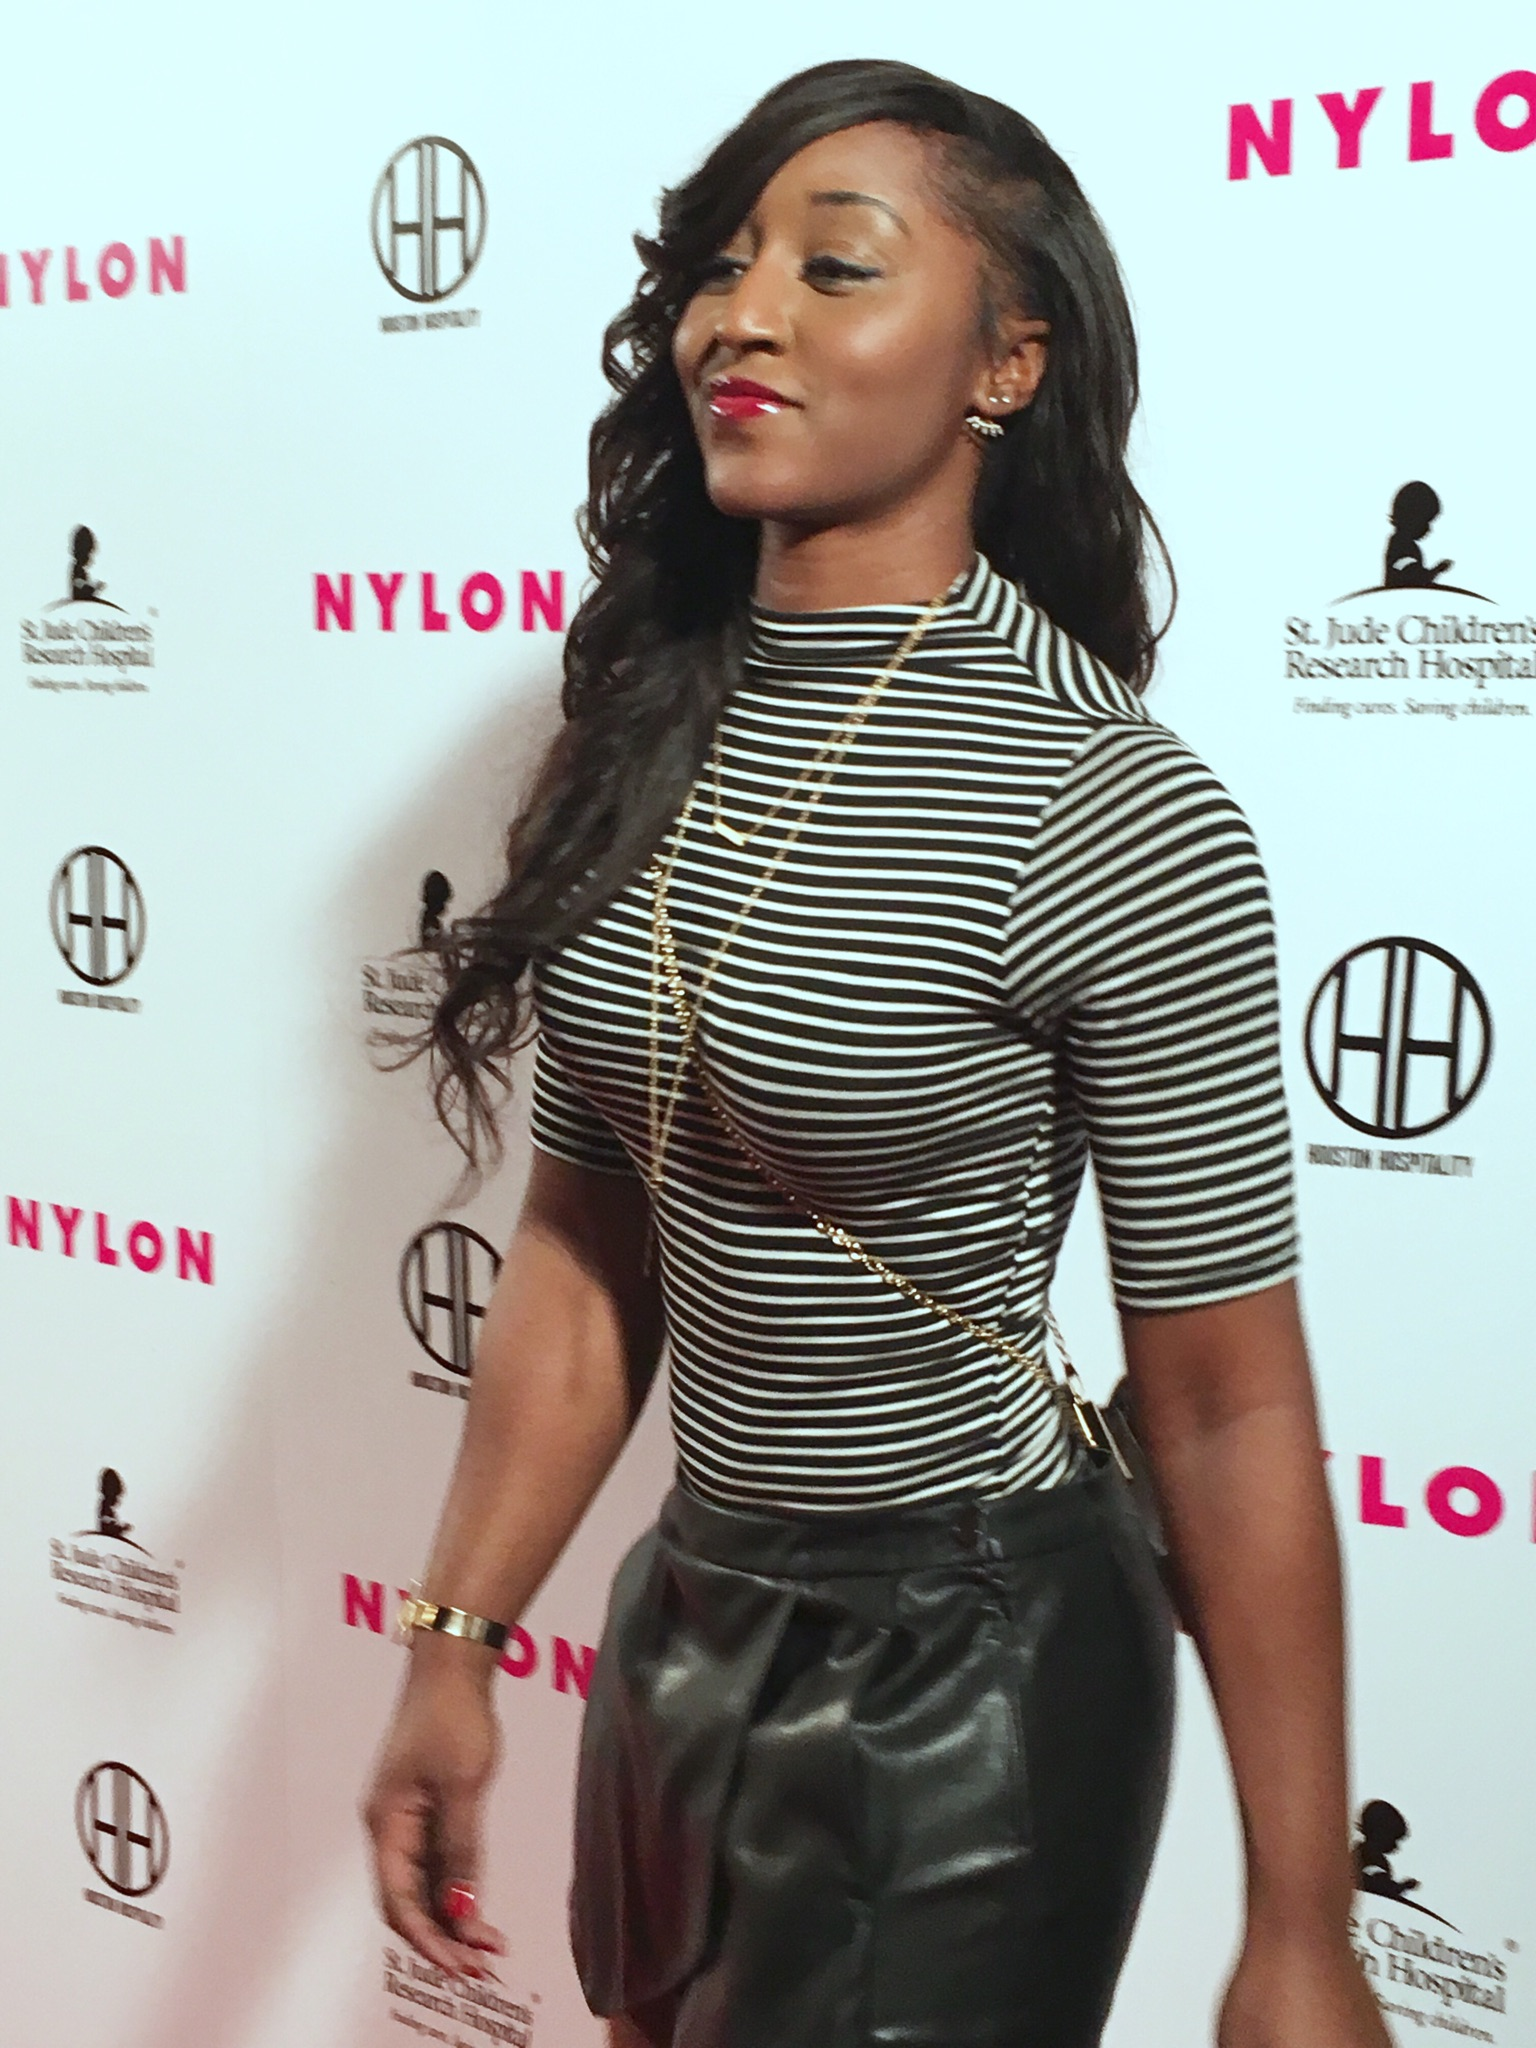 Nylon Magazine Pre-Grammy Red Carpet Event